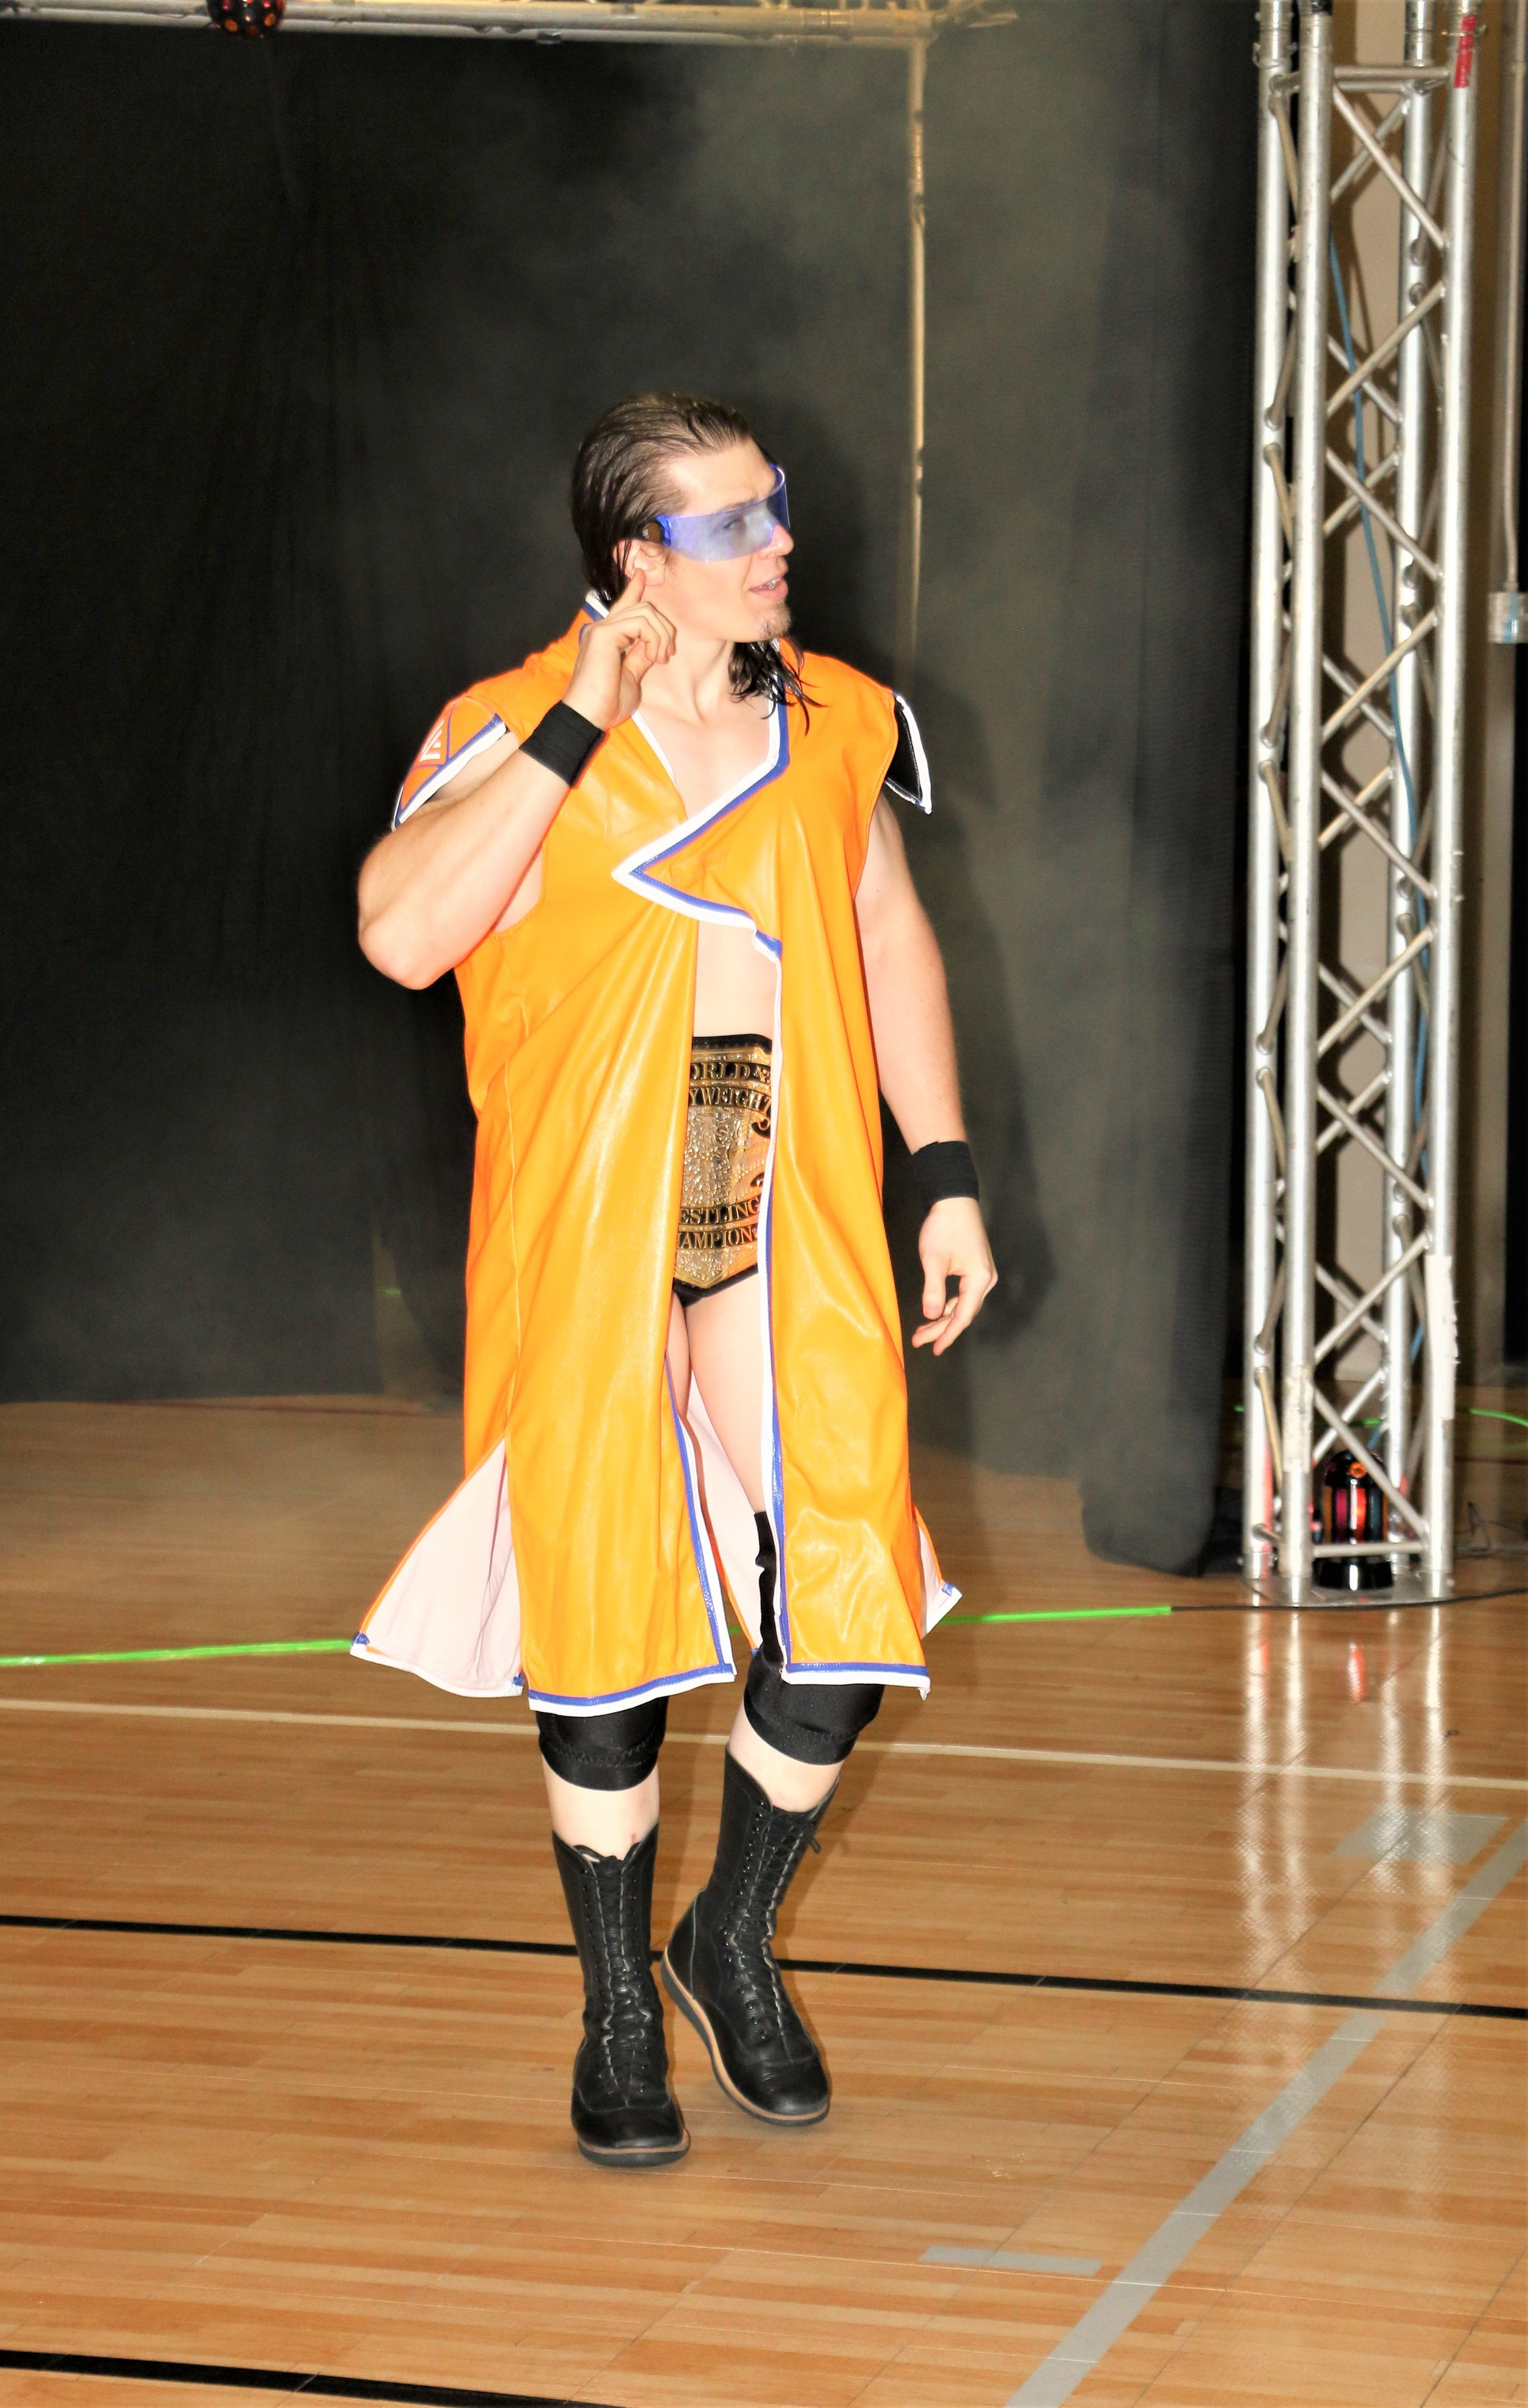 Frontline Pro Champion Logan Lynch enters the arena for his title defense against J Ca$h.